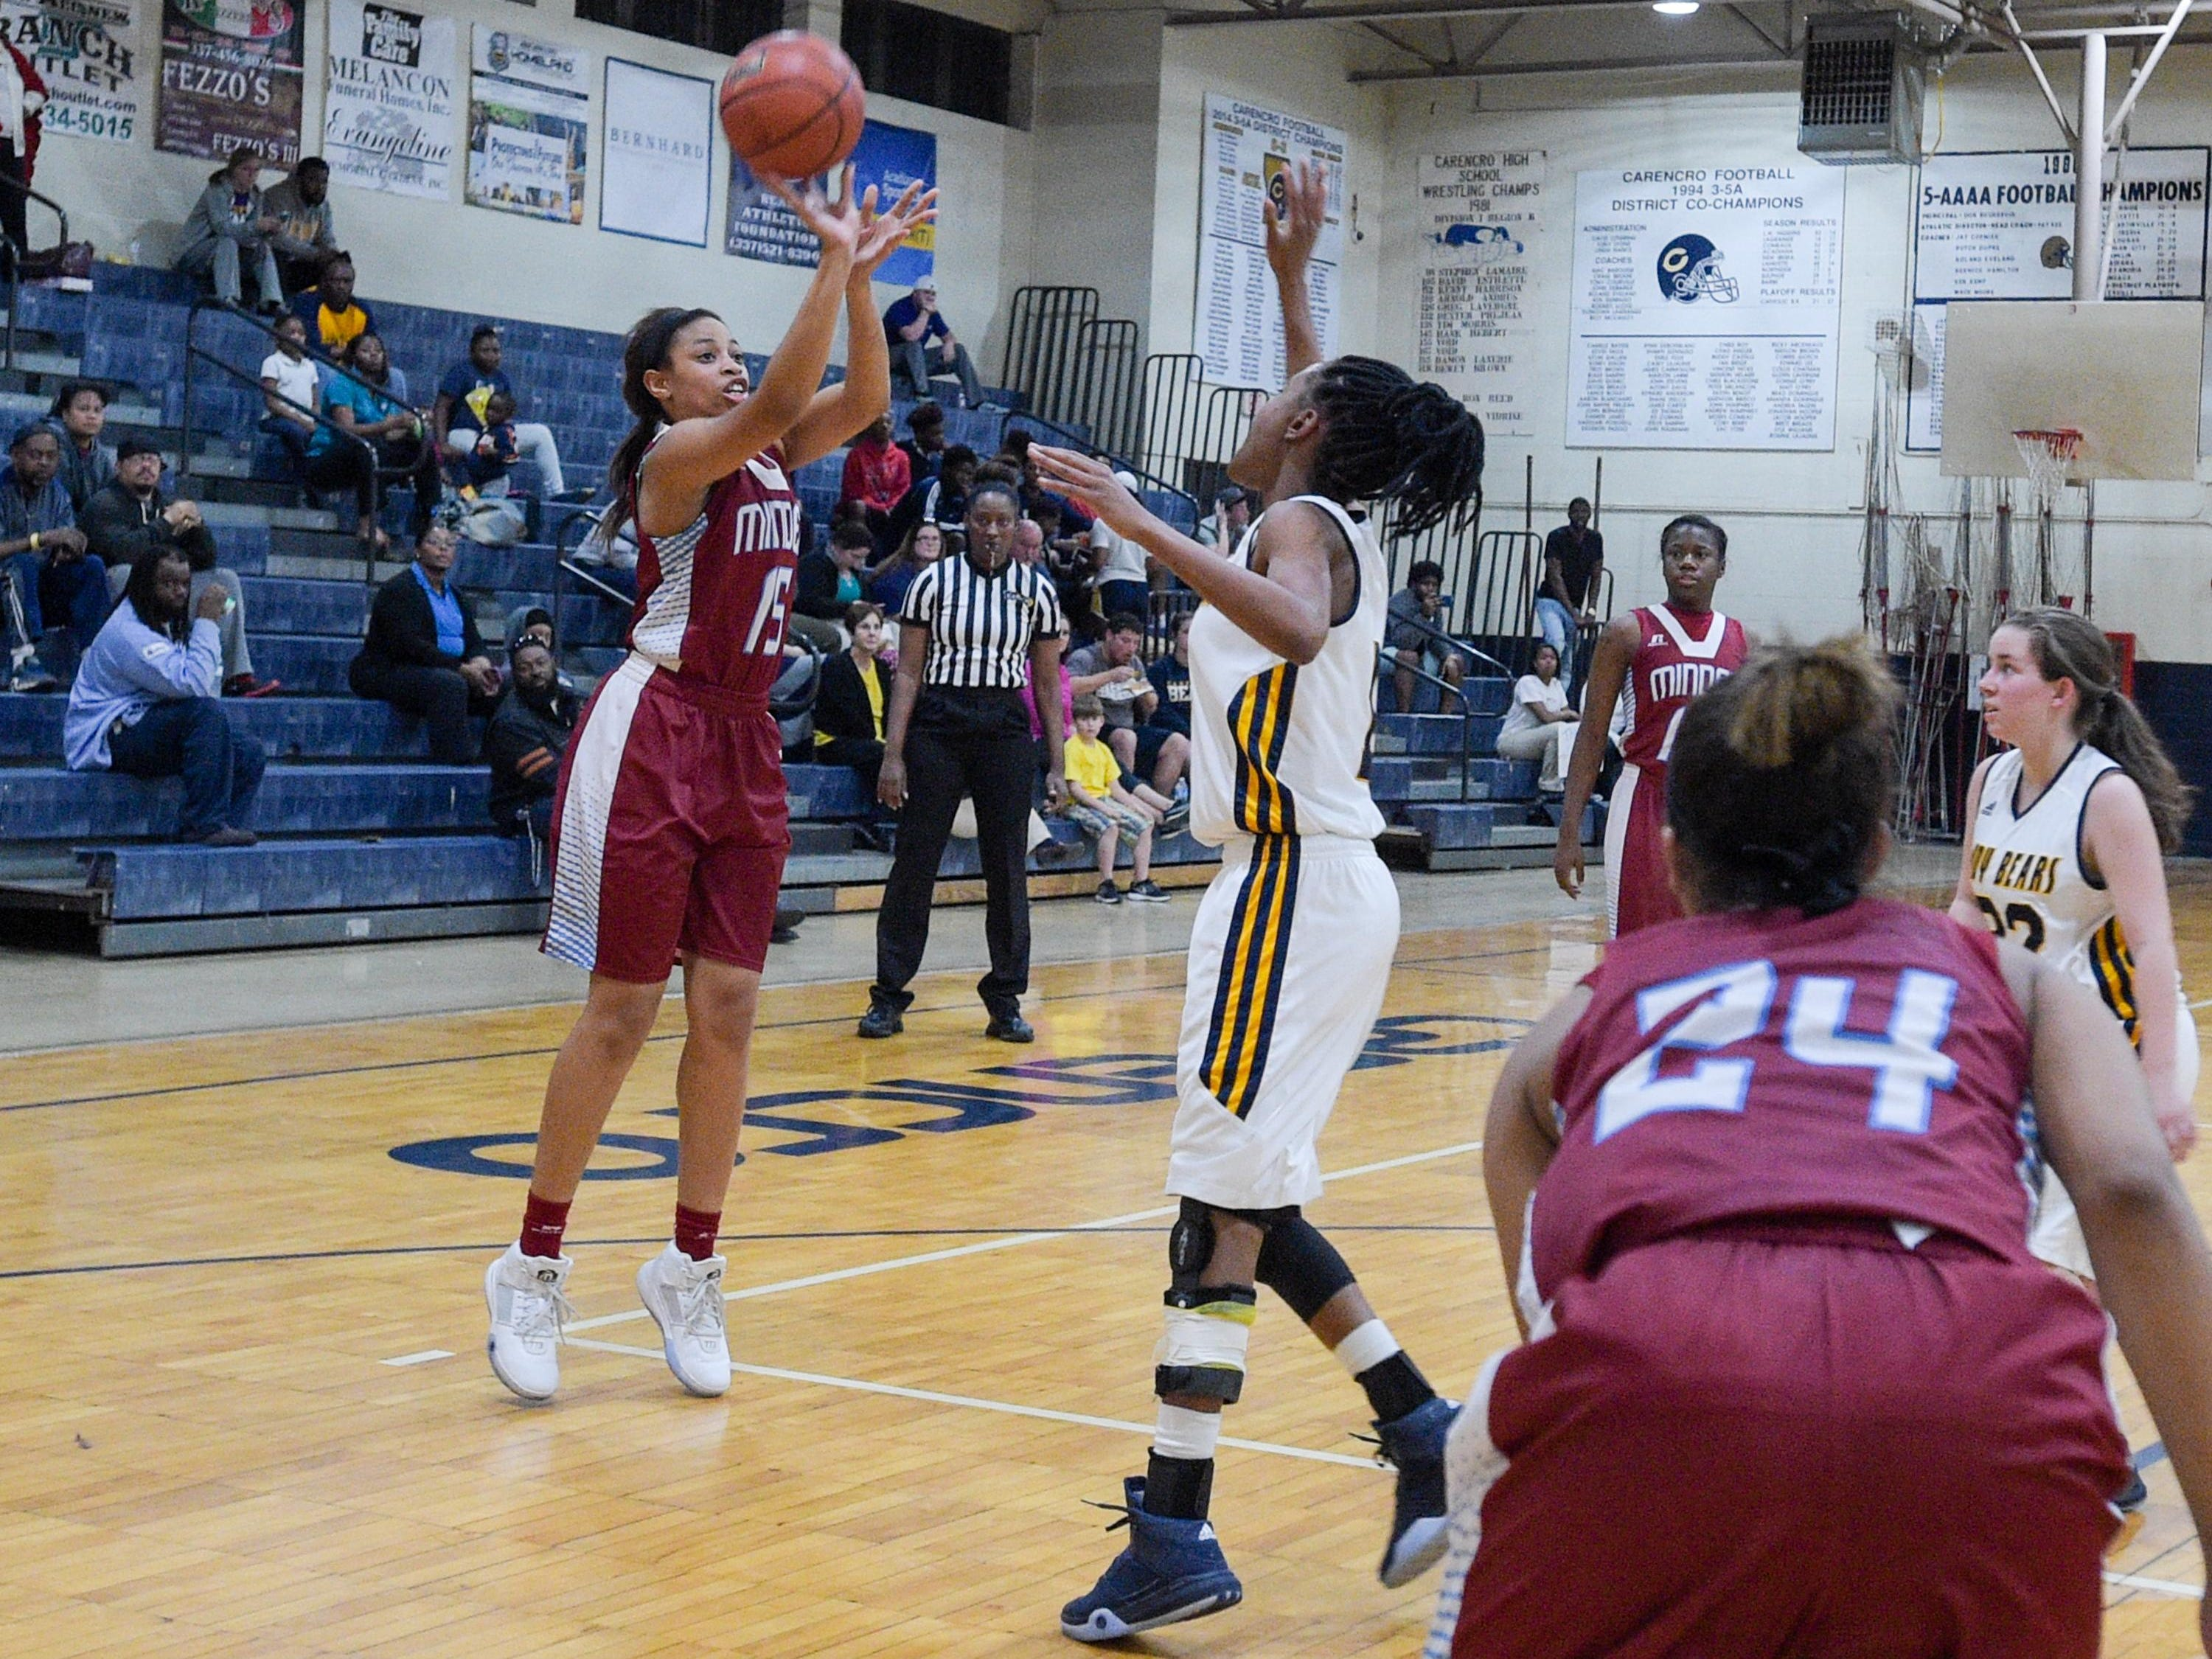 Tiaga Pugh takes a jump shot as the Minden Crimson Tide girls basketball team lost at Carencro on Thursday night.